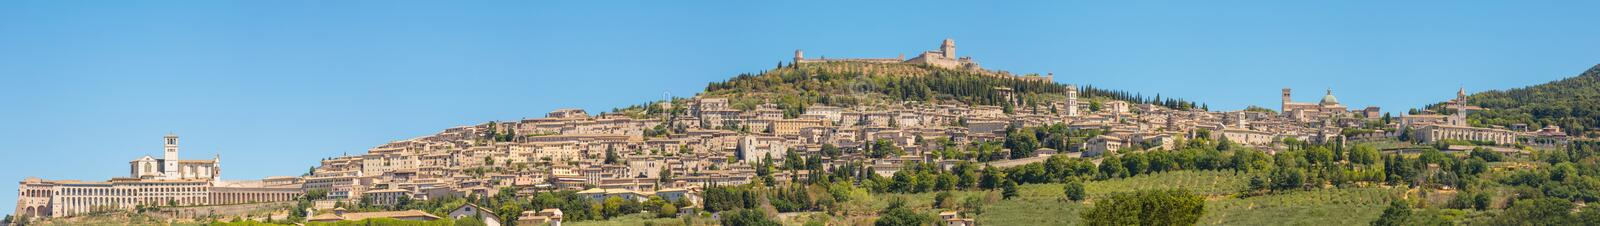 Assisi, un de la petite ville la plus belle en Italie Horizon du village de la terre photo stock